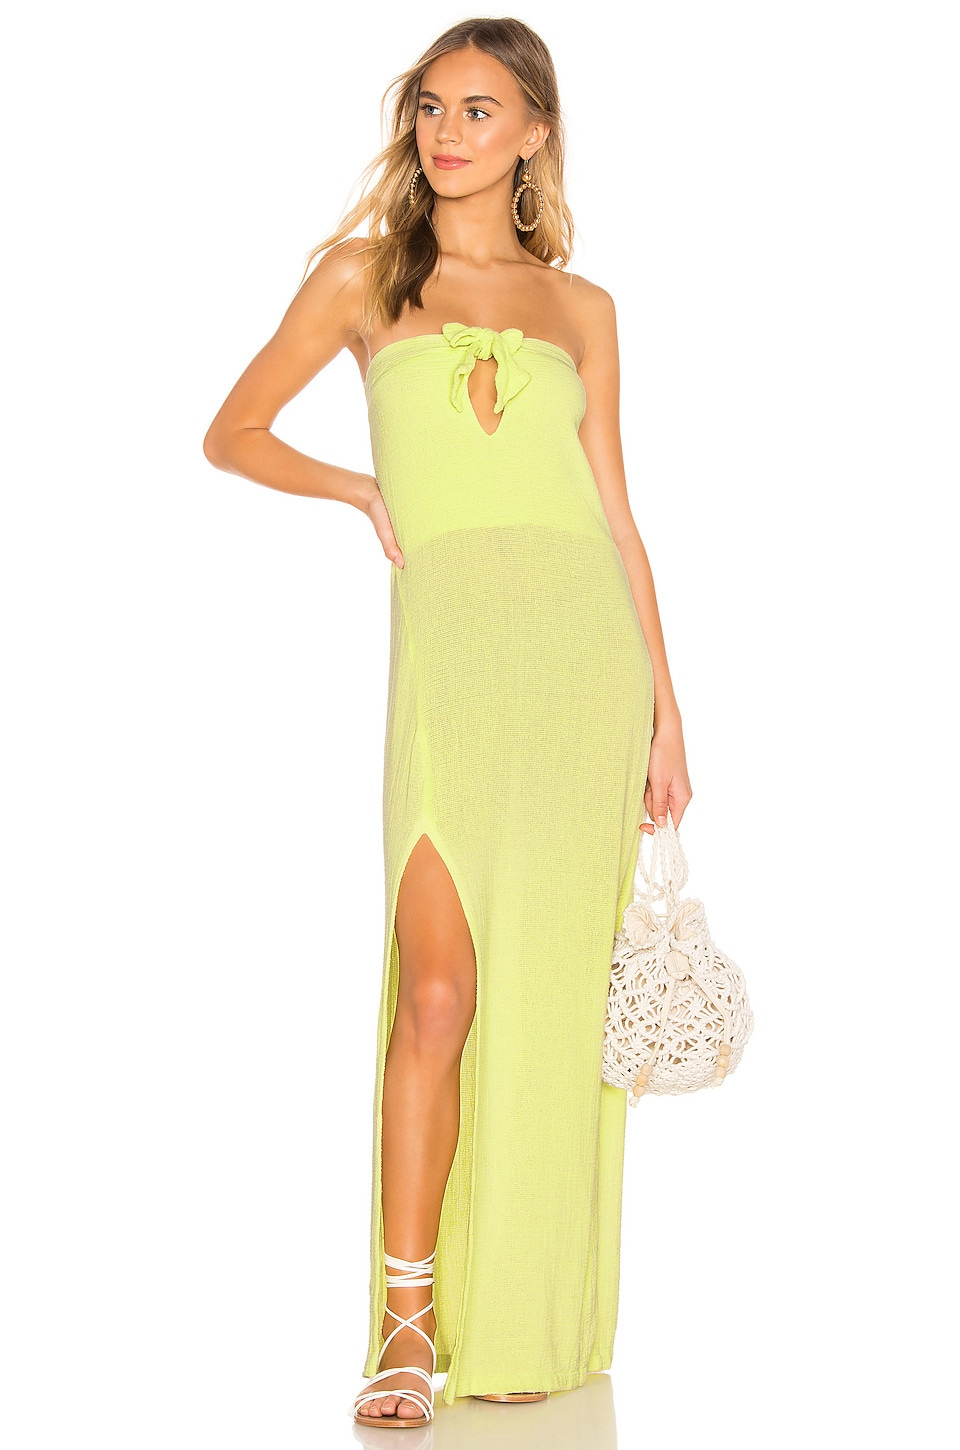 Cali Dreaming Obi Dress in Citrine